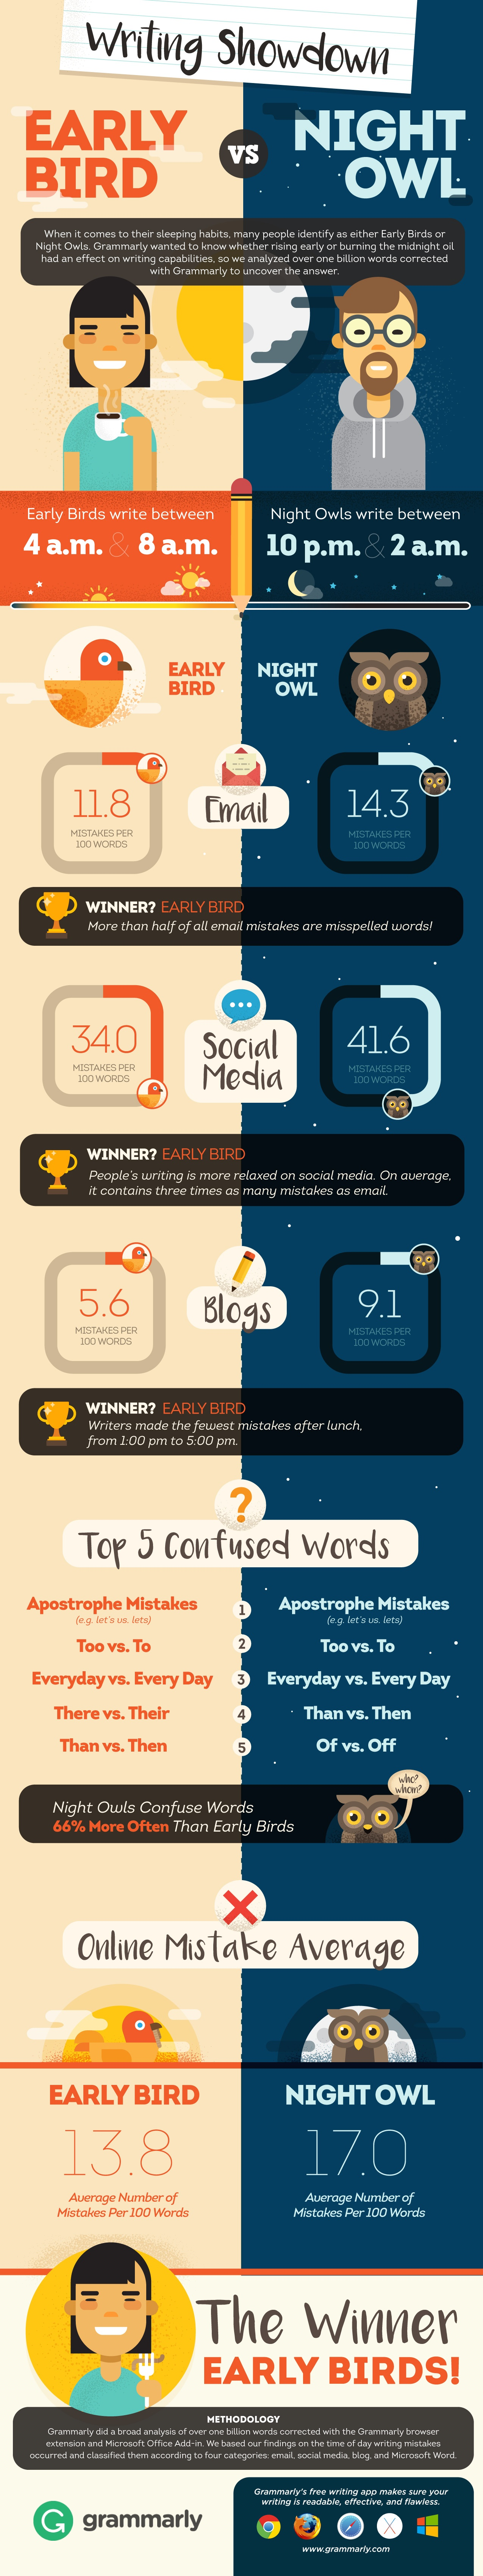 Early Birds Vs Night Owls When S The Best Time Of Day To Write Infographic Early Bird Infographic Night Owl